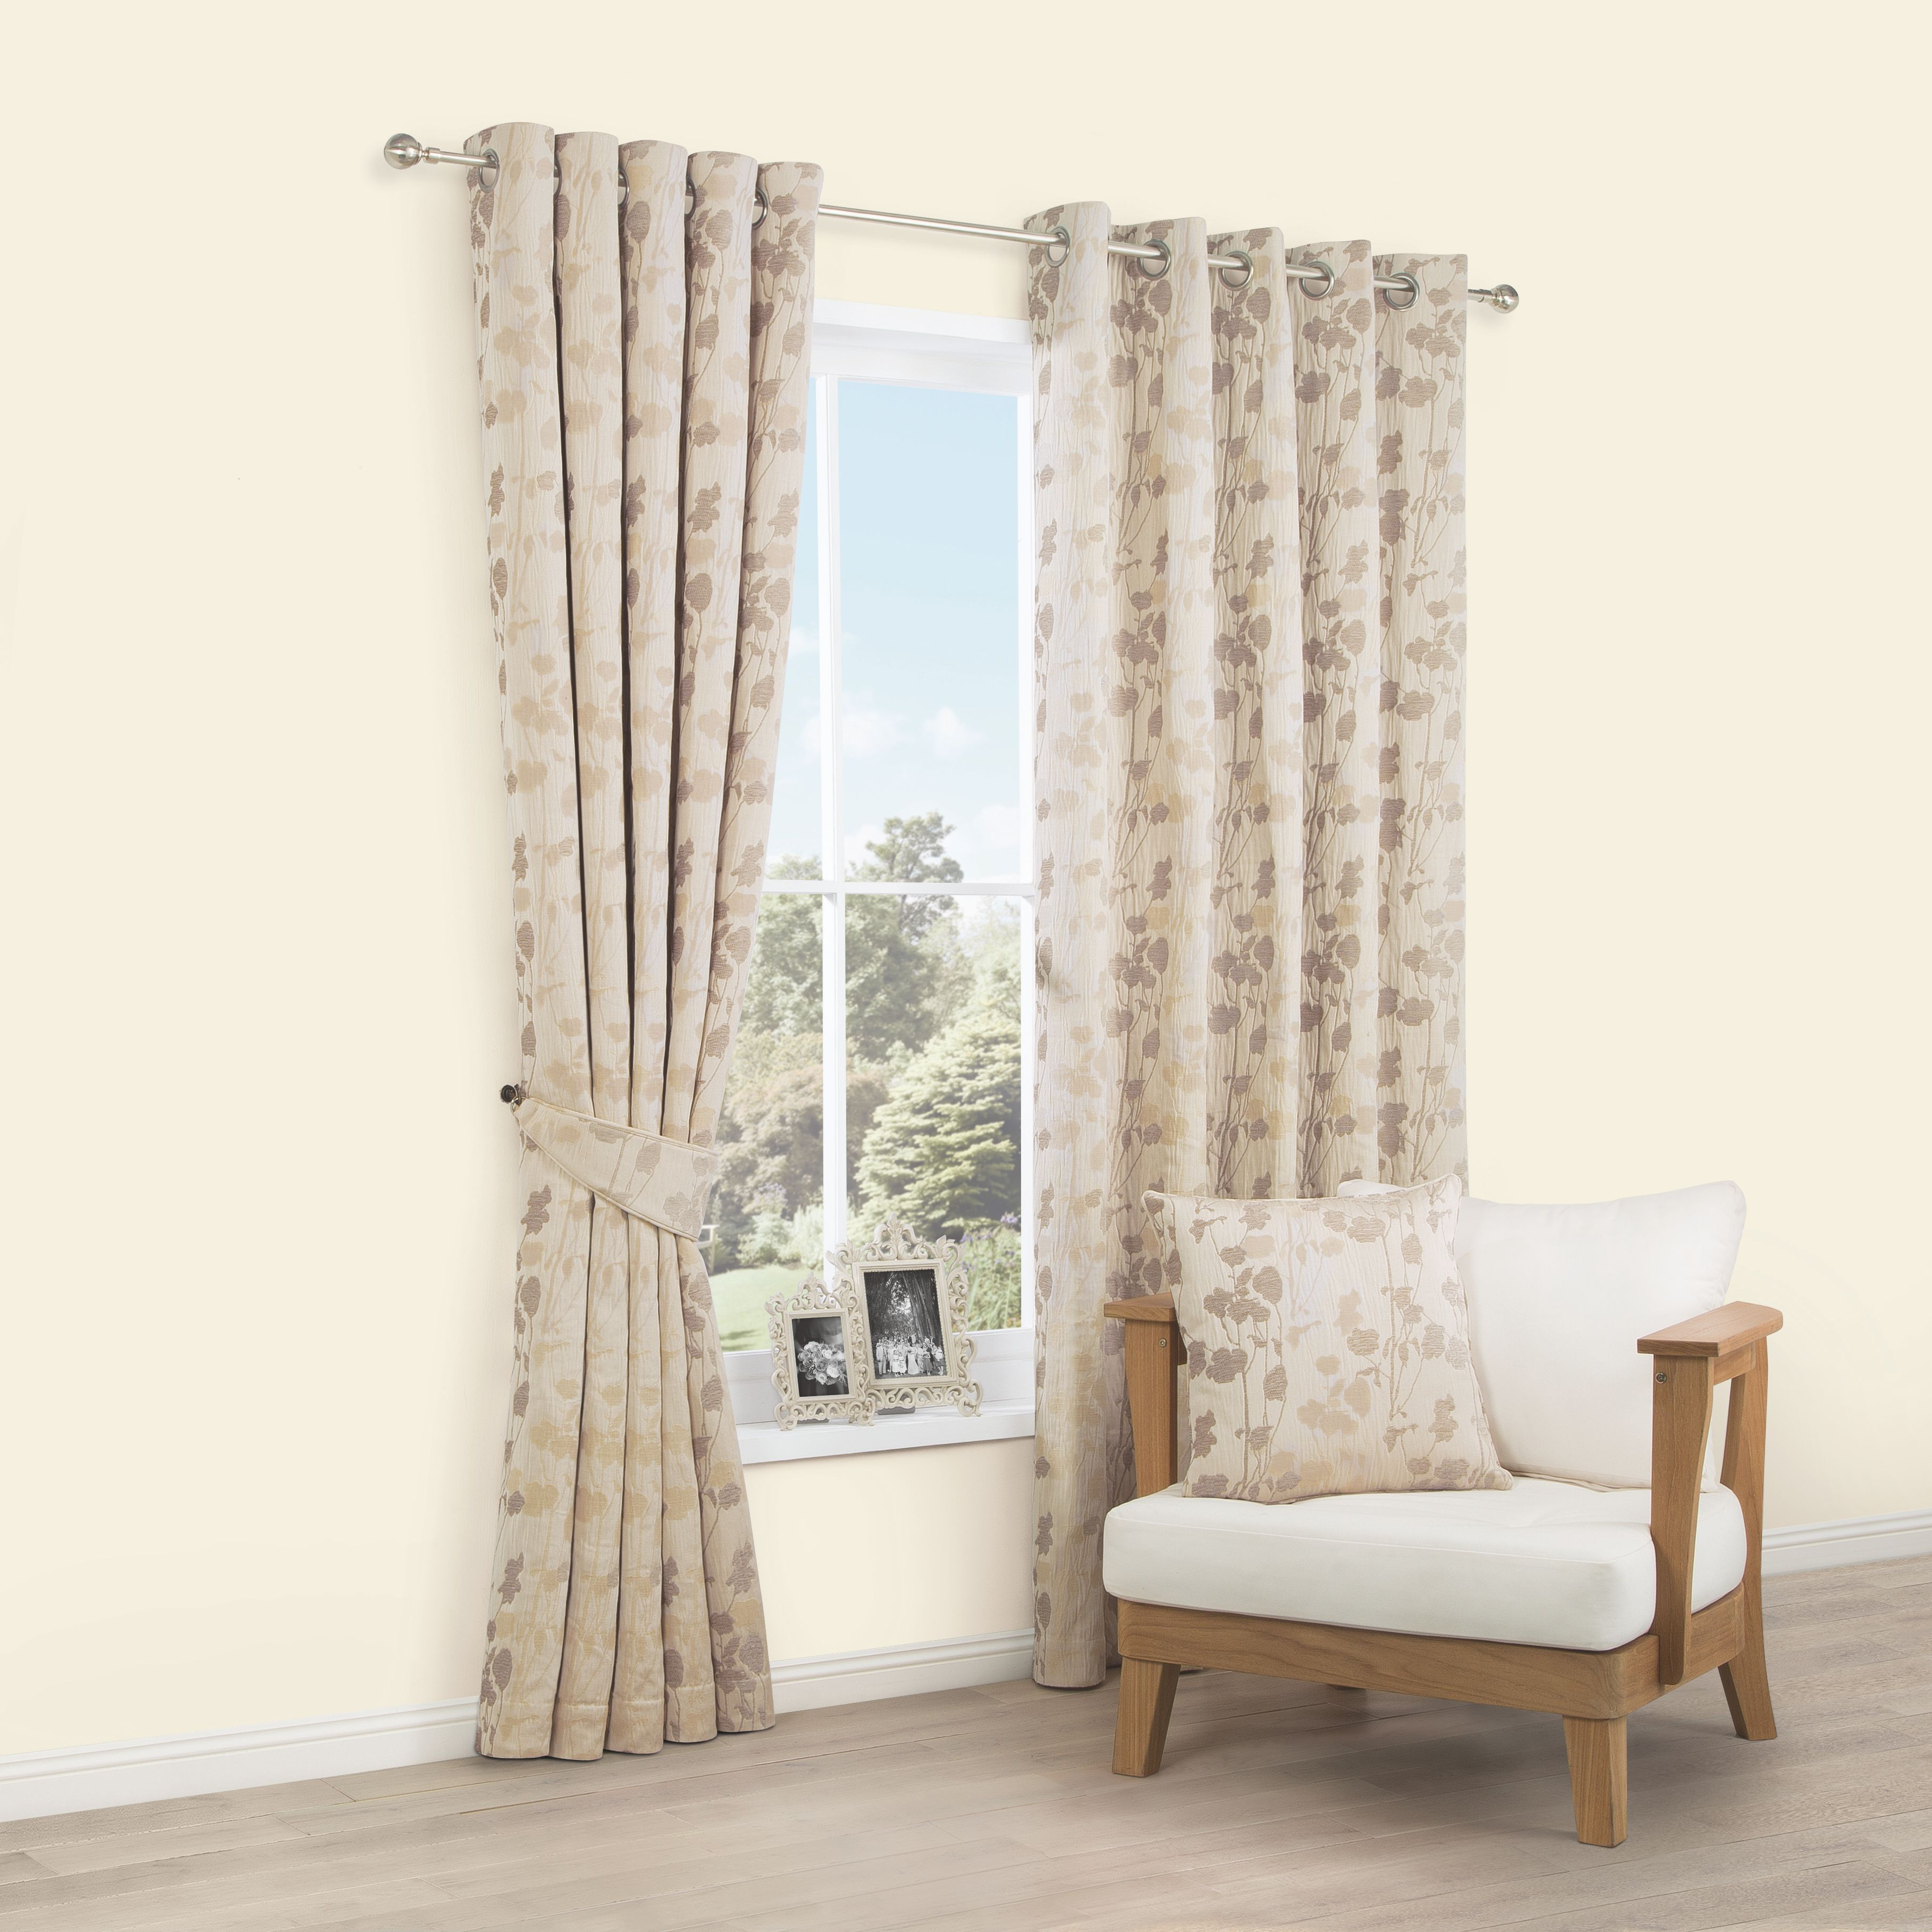 Alessandra Ivory Meadow Woven Eyelet Lined Curtains (W)117cm